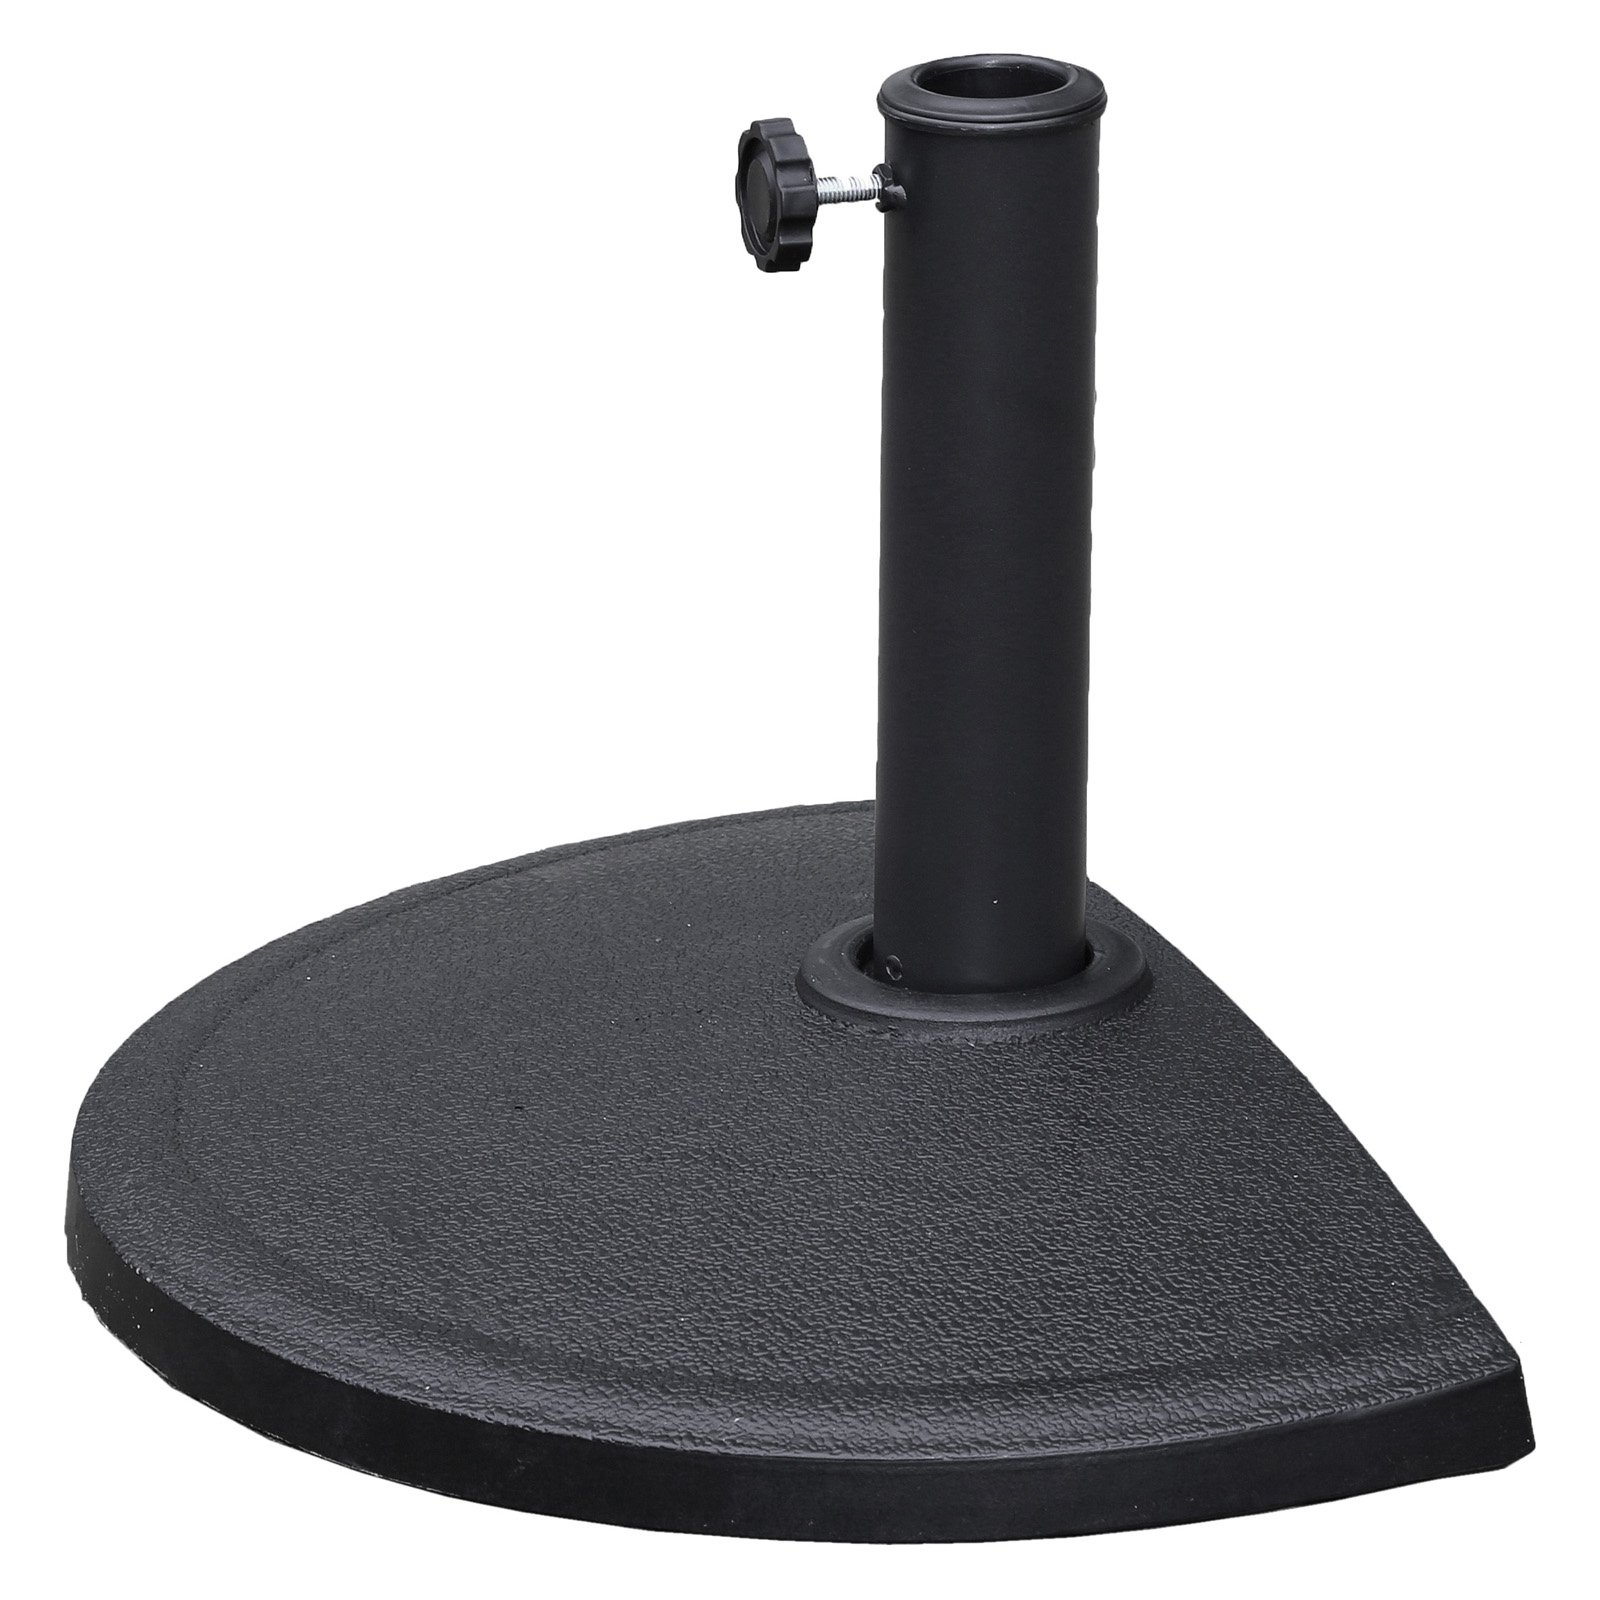 Half-Round Wall Hugger Umbrella Base for Half-Round Umbrellas